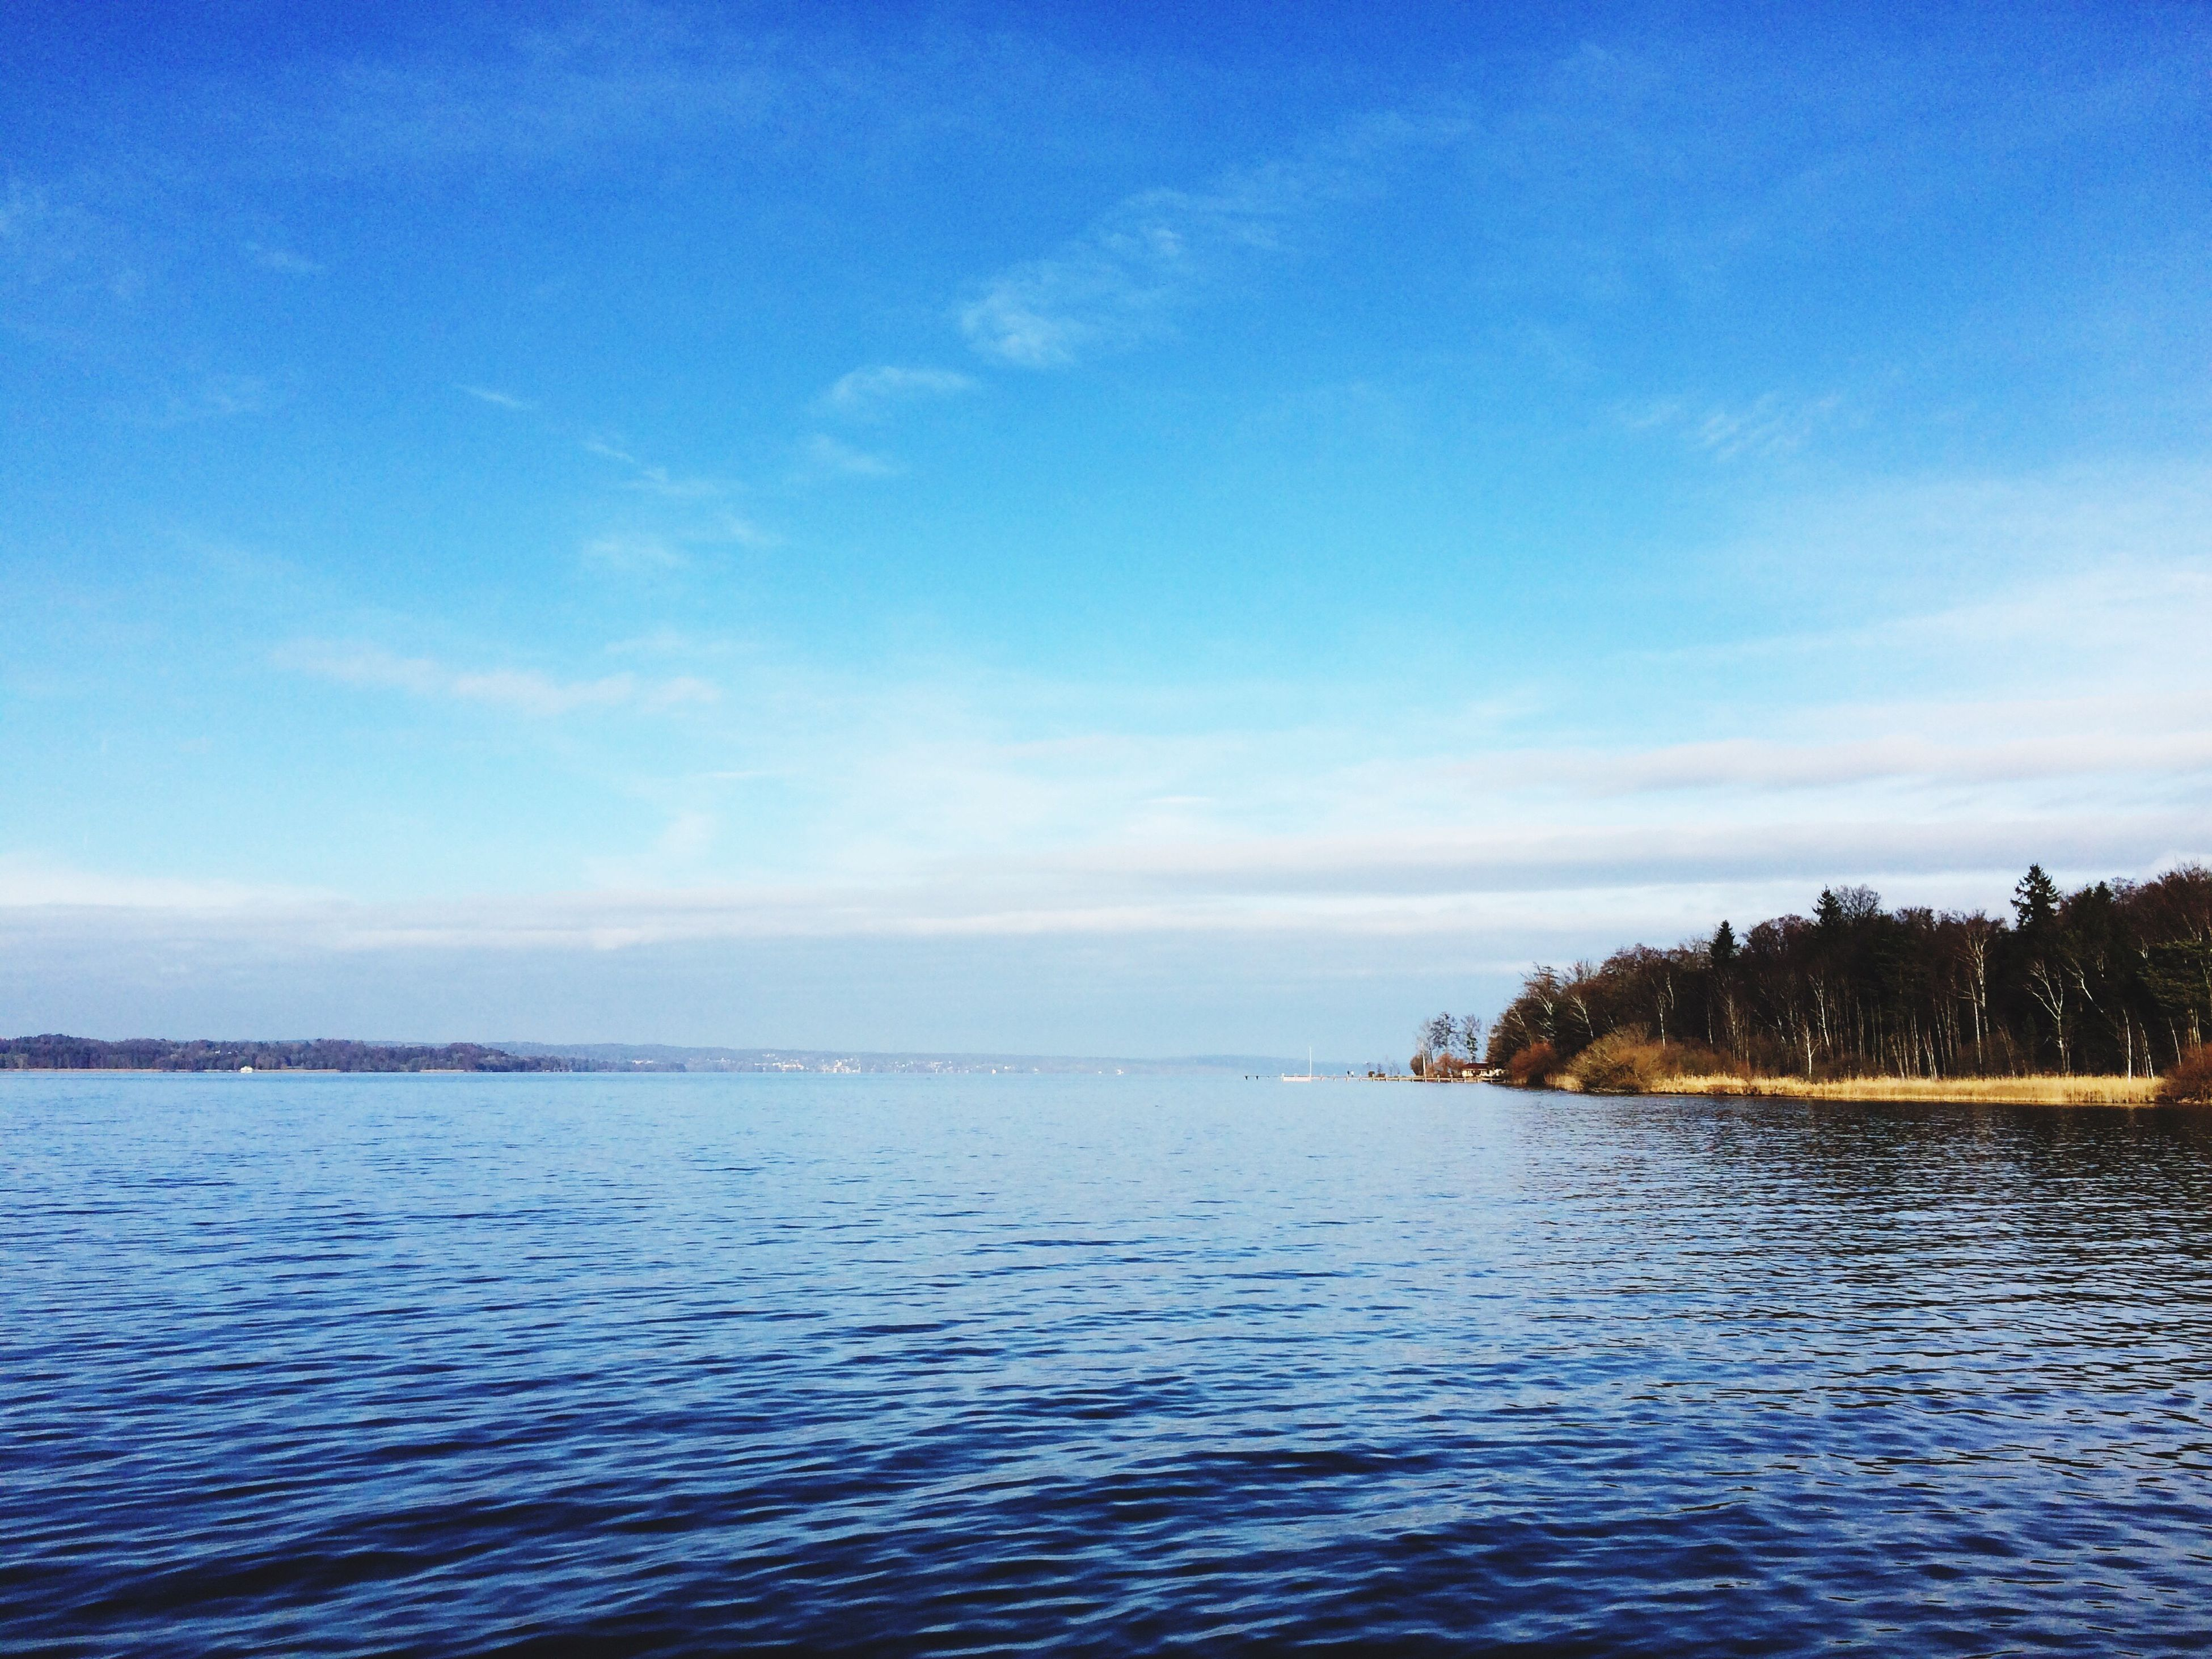 sea, water, blue, sky, beauty in nature, nature, tree, horizon over water, tranquility, scenics, outdoors, tranquil scene, day, waterfront, no people